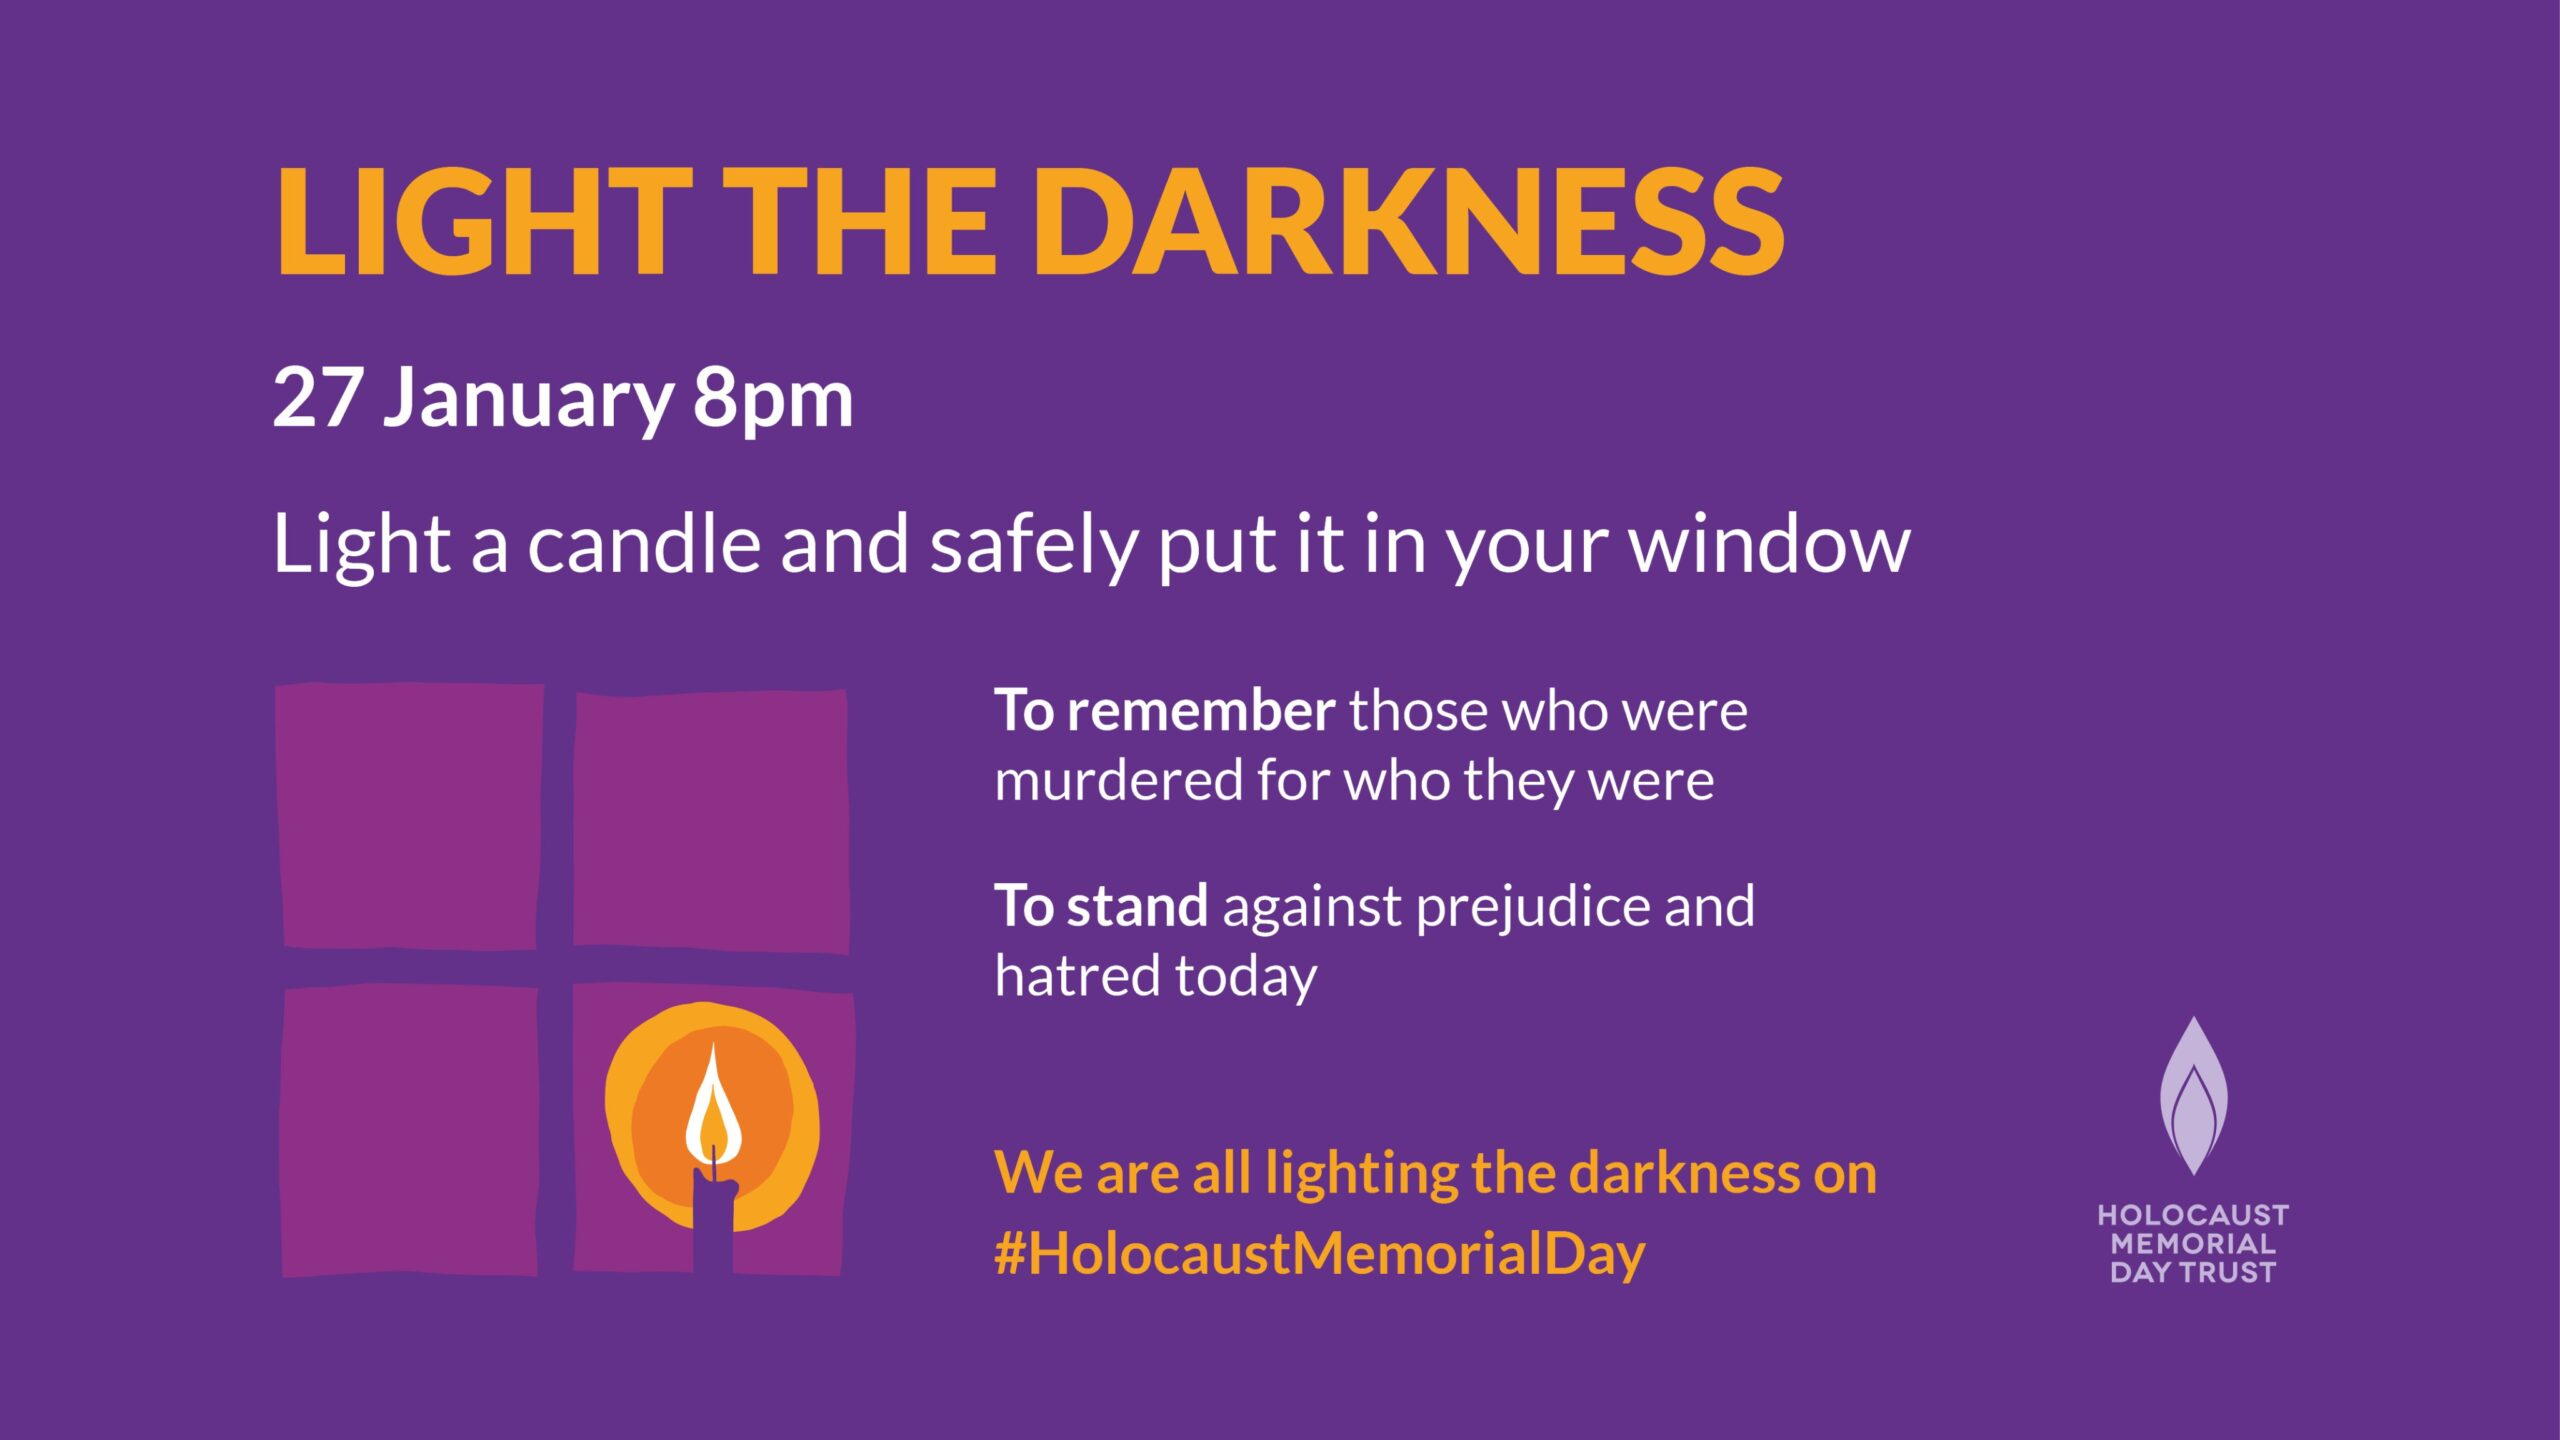 Today Holocaust Memorial Day